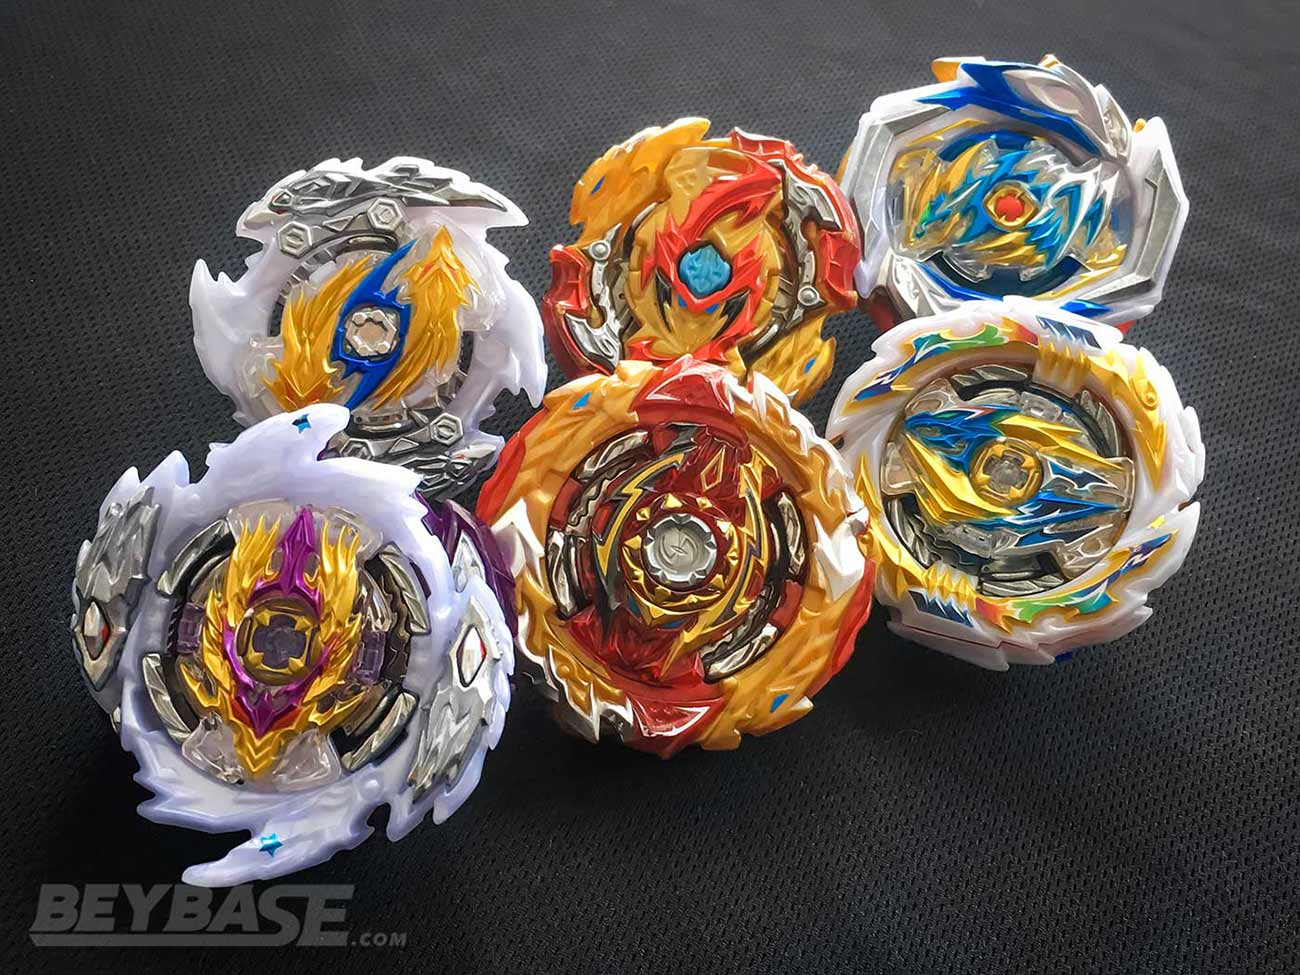 beyblade burst sparking longinus spriggan and dragon evolutions in front of cho-z versions